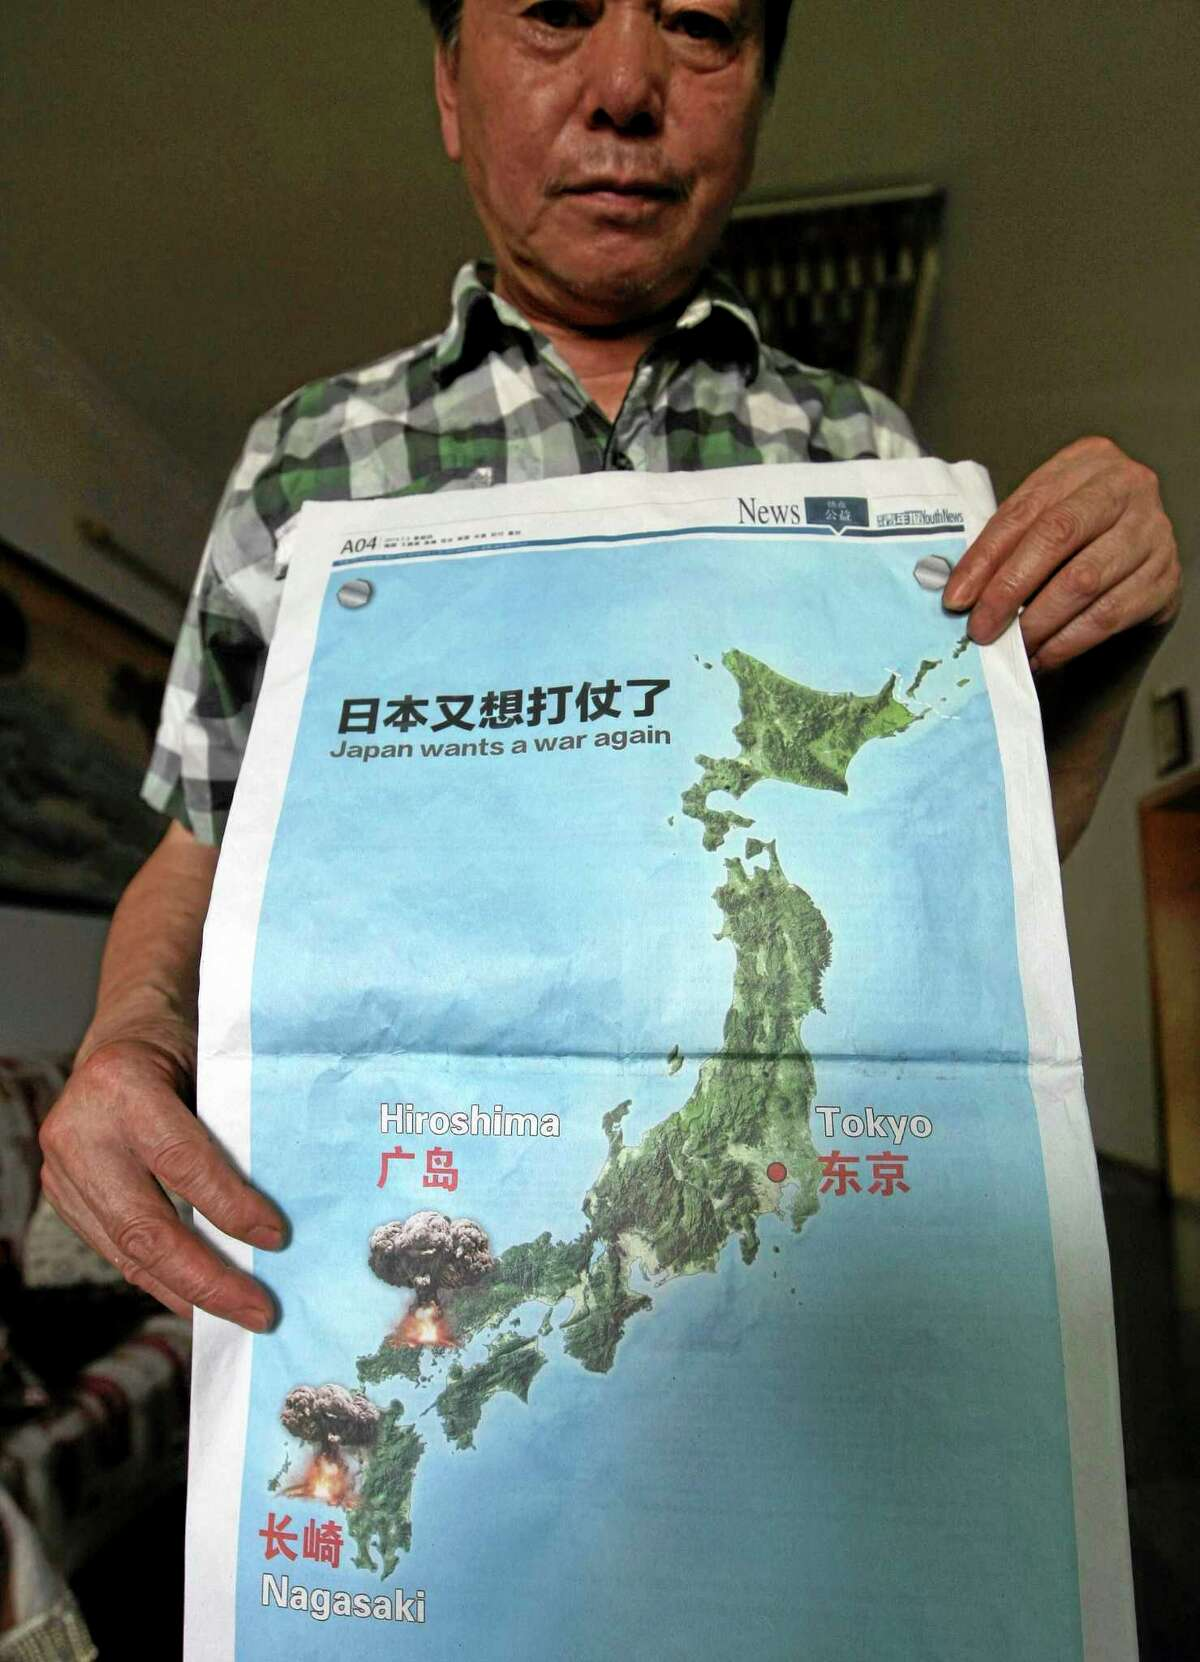 """A man poses with a full page advertisement with the headline """"Japan wants a war again"""" and showing mushroom clouds over Hiroshima and Nagasaki that was published on the July 3, 2014 issue of the Chonqging Youth Daily newspaper days after Japan's cabinet approved a reinterpretation of the country's pacifist postwar constitution in Chonqing in southwestern China on Wednesday July 9, 2014. (AP Photo) CHINA OUT"""